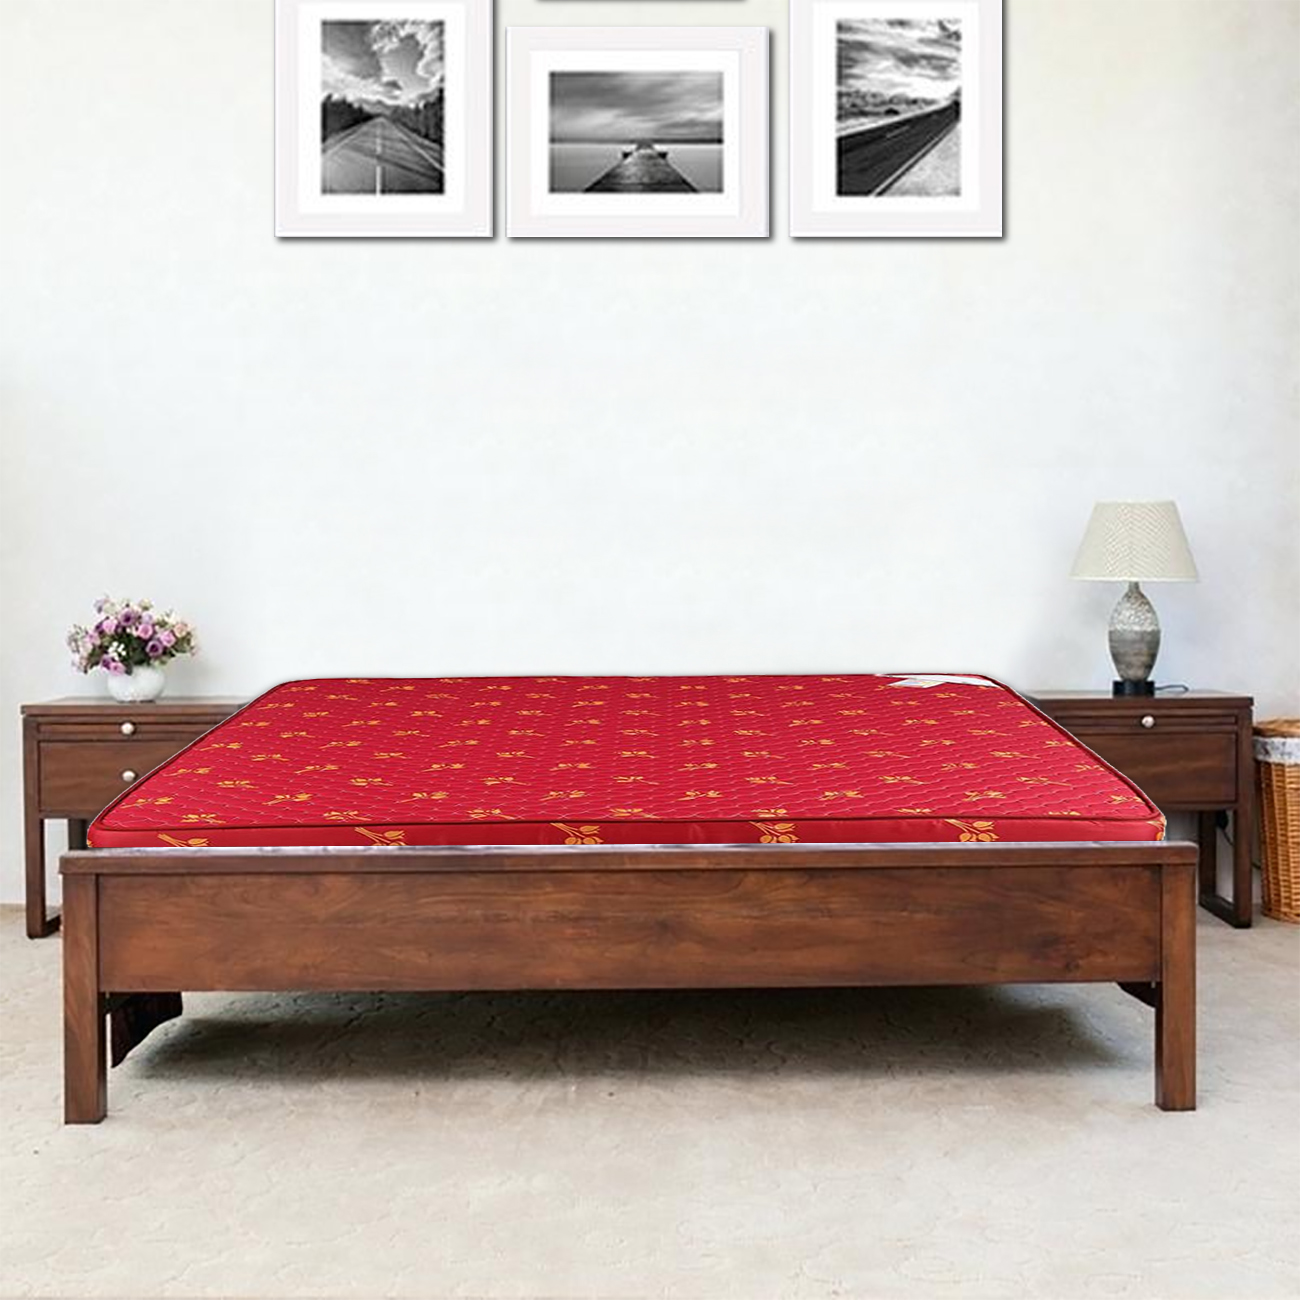 Solace Fabric King Bed Mattress in Maroon Colour by HomeTown